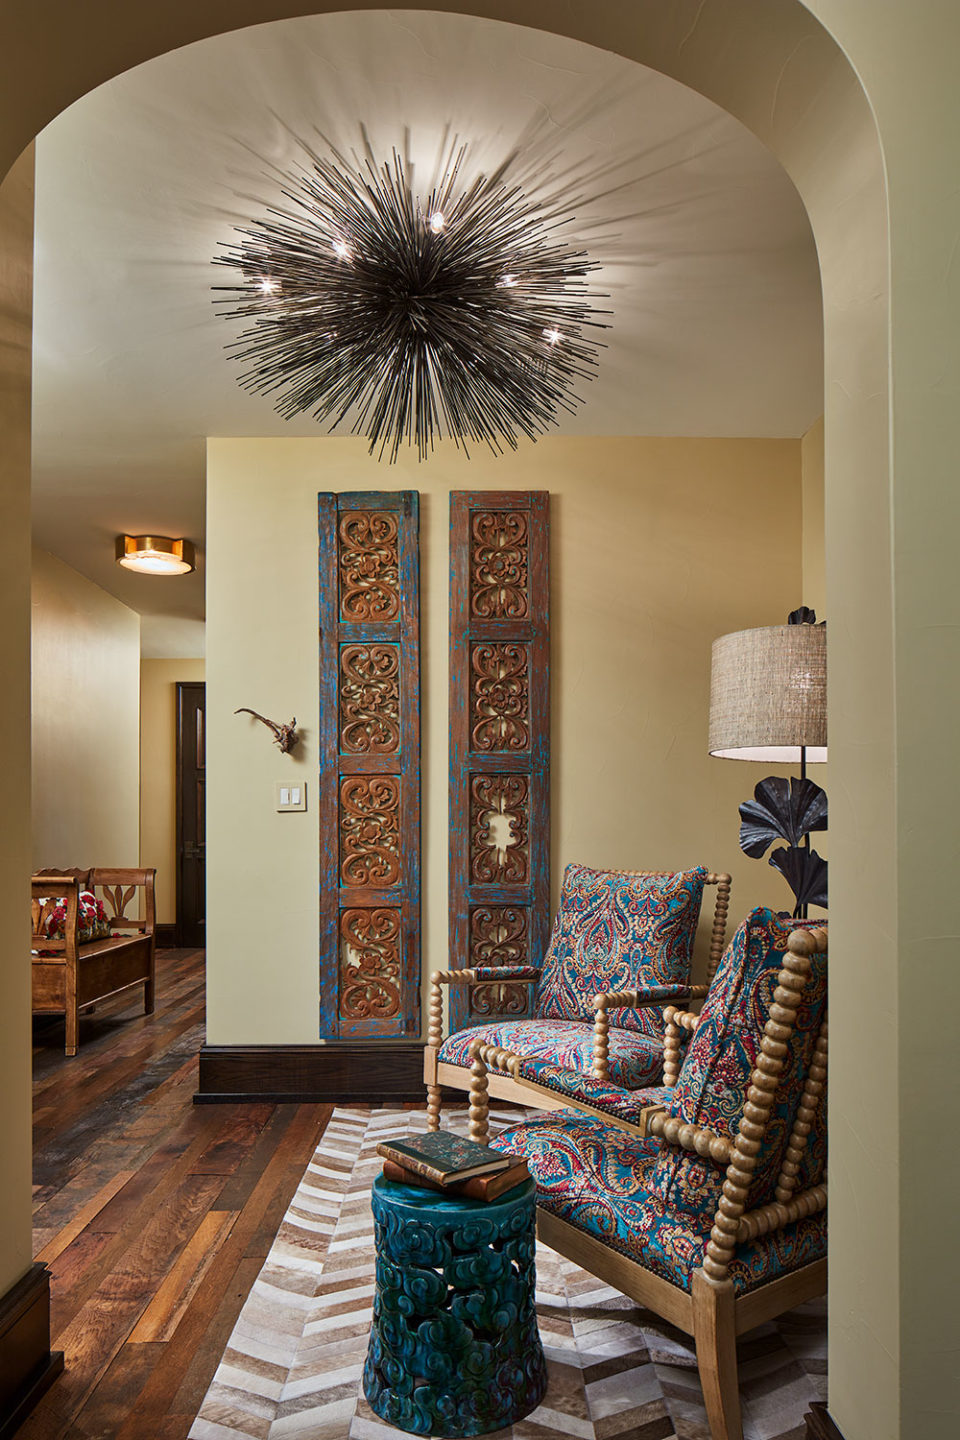 Upper Hallway Sitting Area with Paisley Chairs and Dramatic Light Fixture